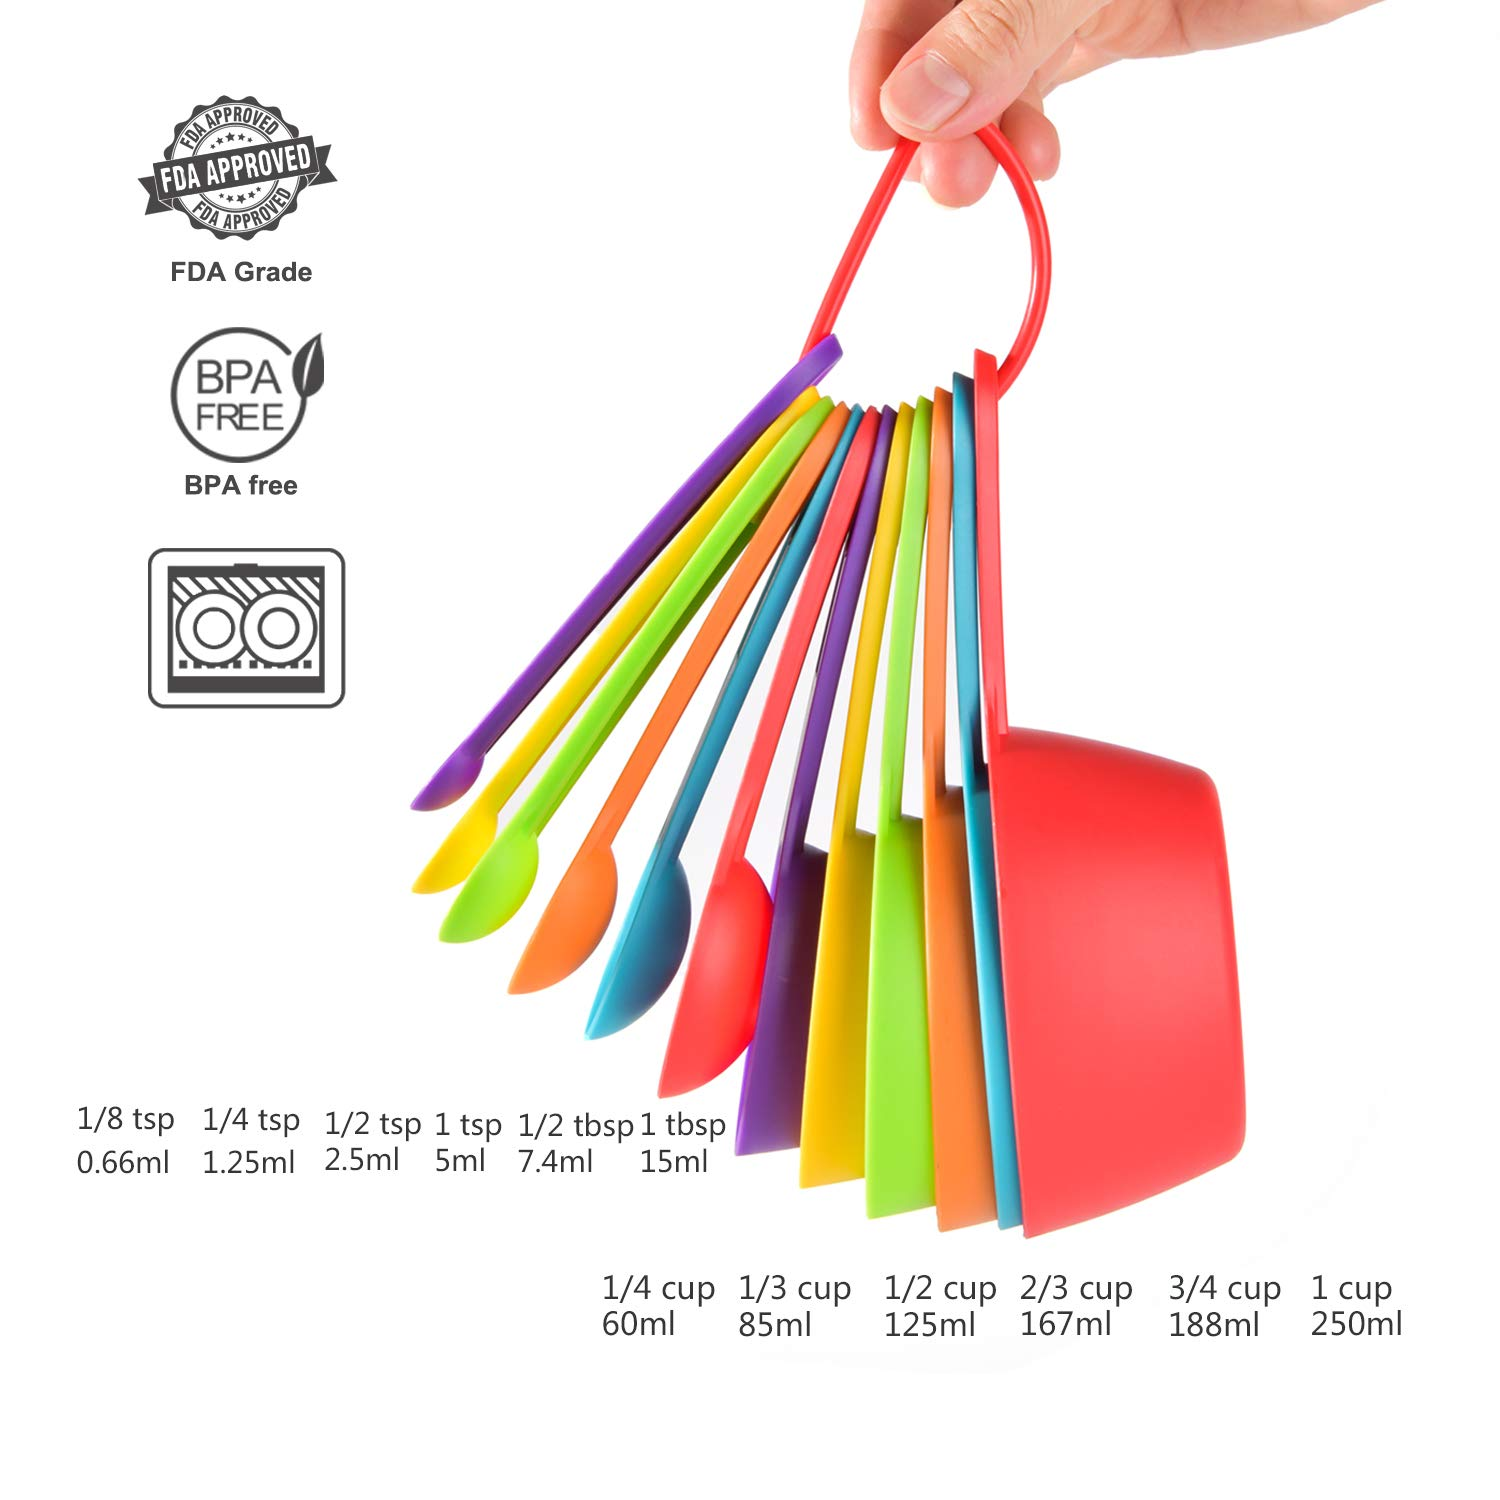 Measuring Cups and Spoons Set, 12 Piece Plastic Measuring Cups Measuring Spoons Stackable for Measuring Dry and Liquid Ingredients Great for Backing and Cooking (Random Color)